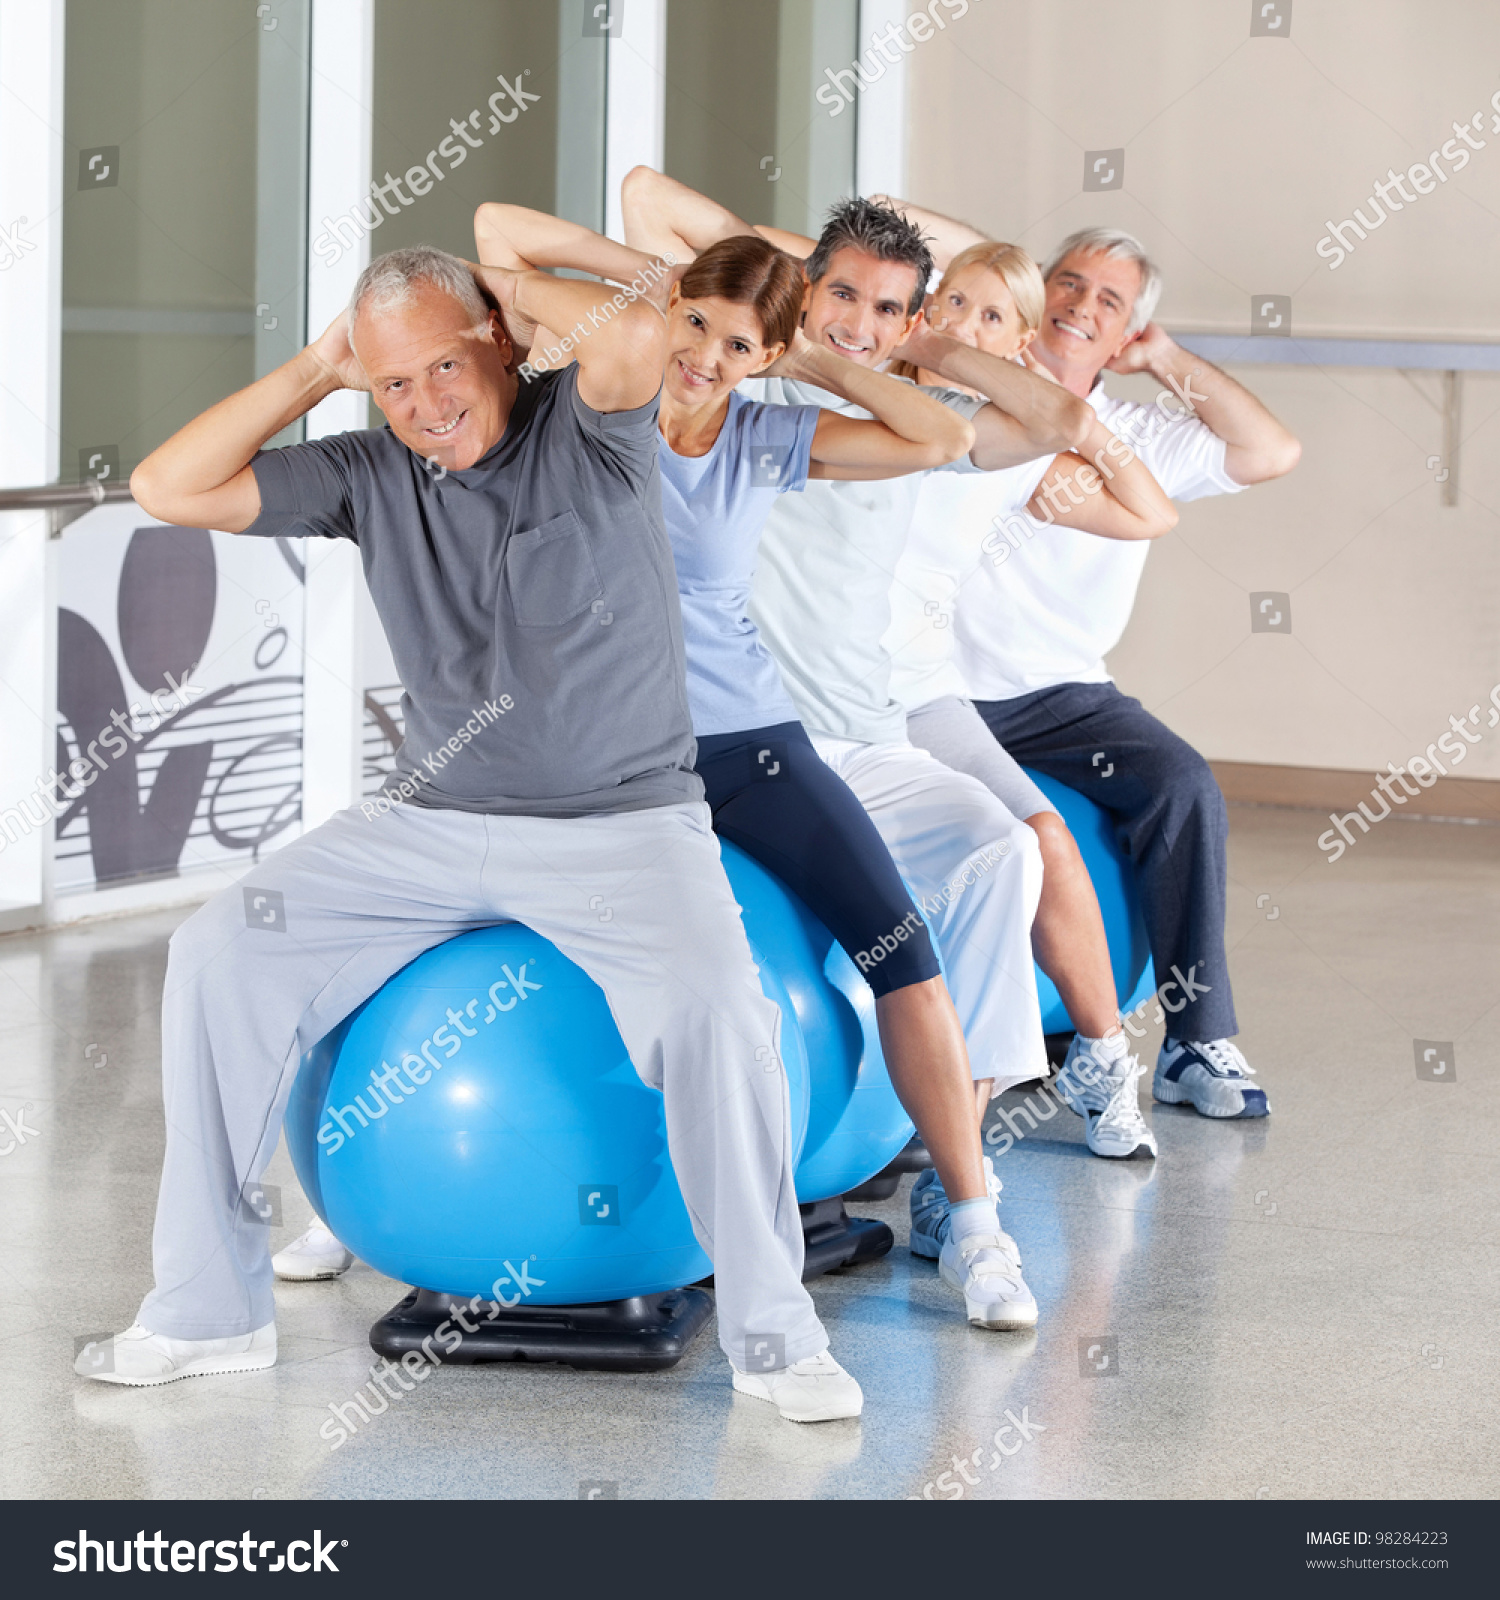 Exercises for senior citizens